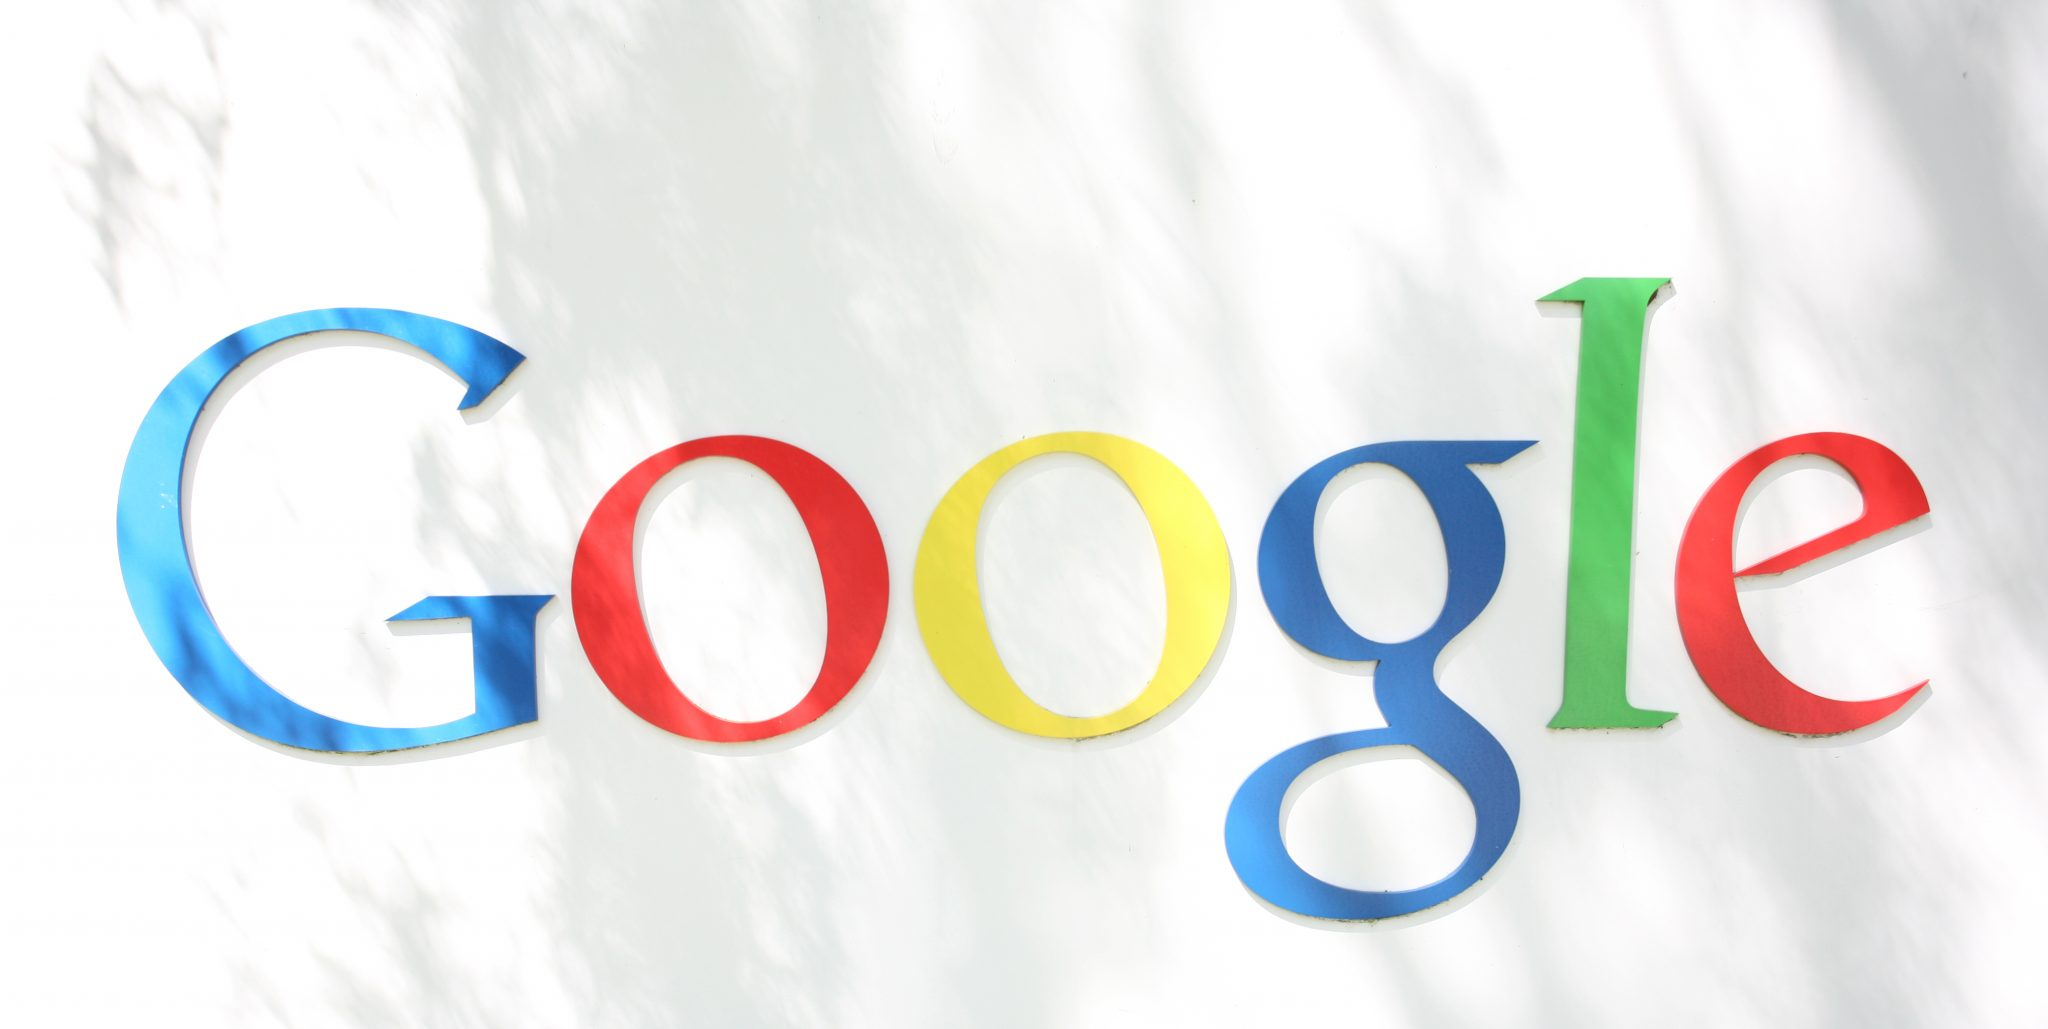 141396437 31 - Google patents method to get rid of Clone Apps from Google Play